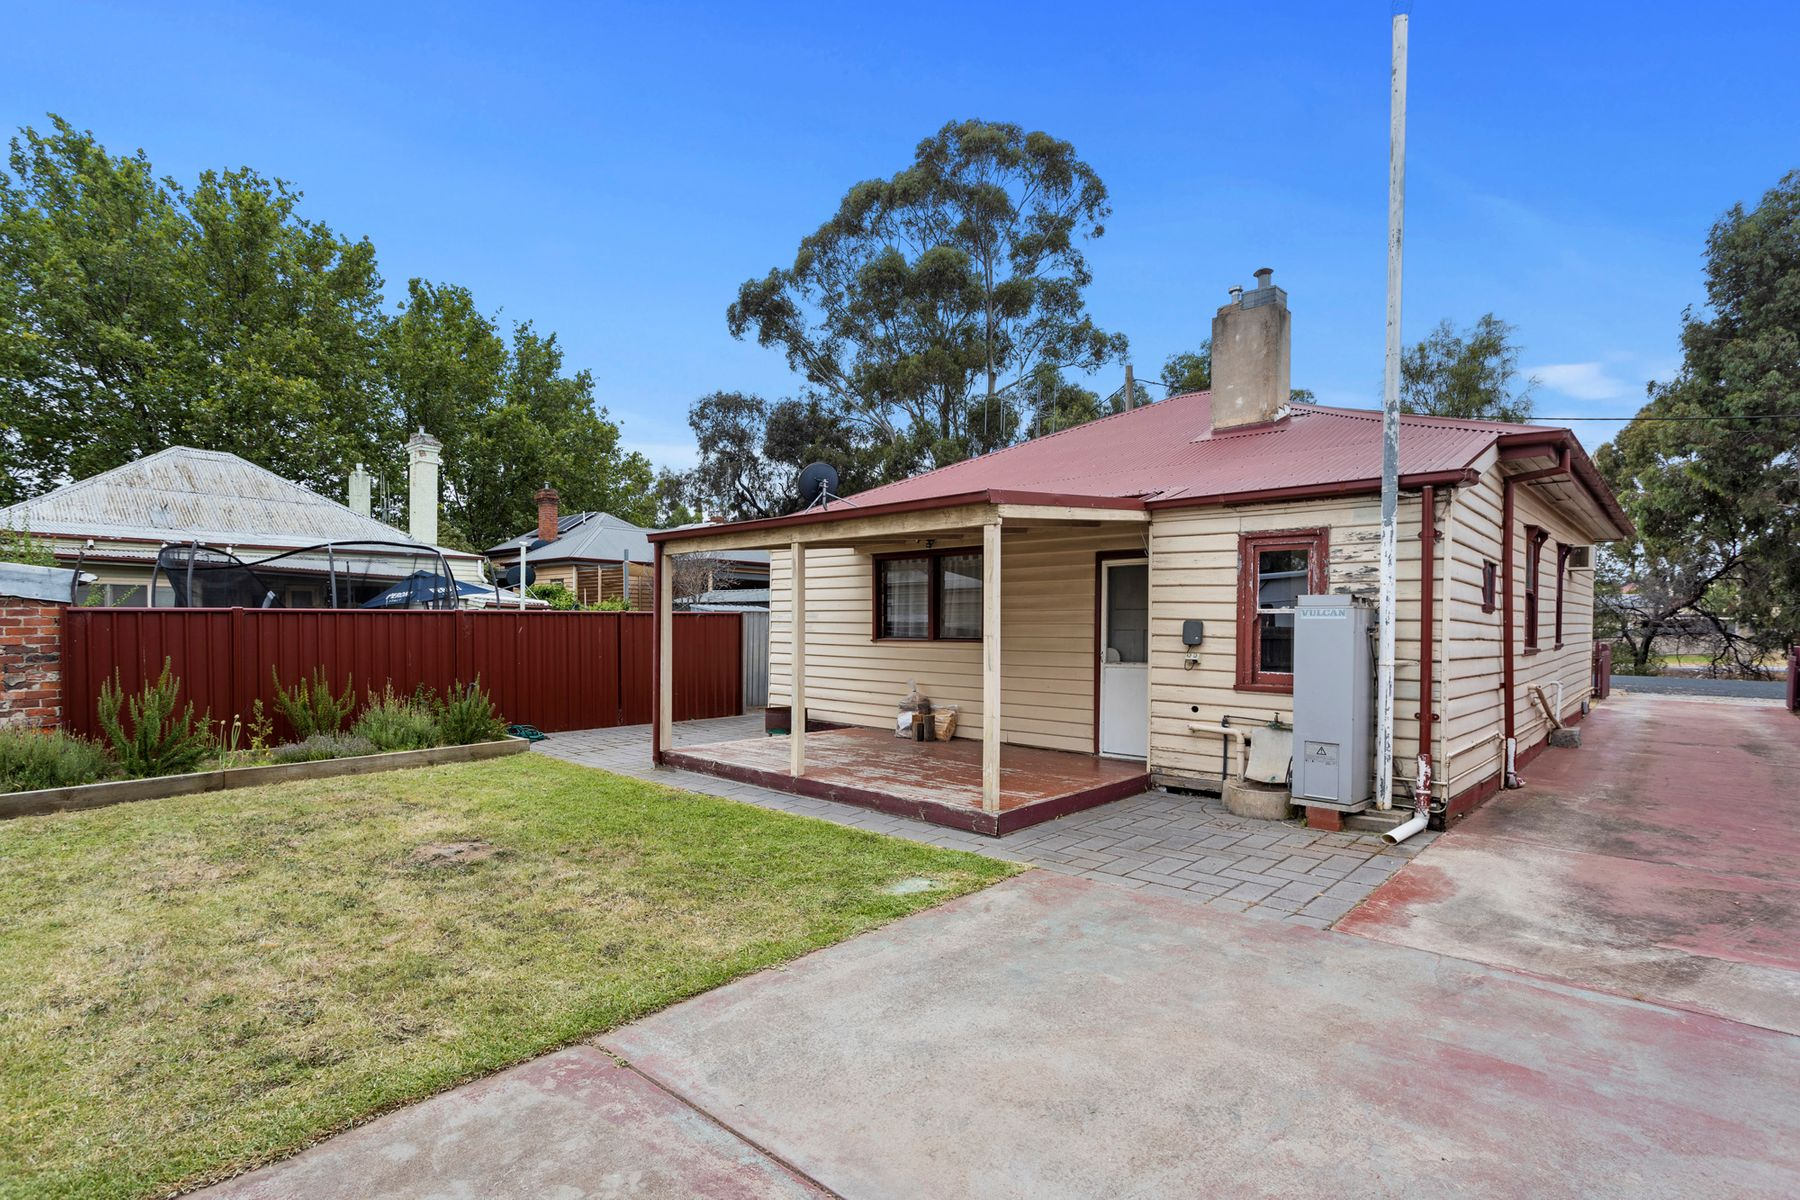 40 Havlin Street West, Bendigo, VIC 3550